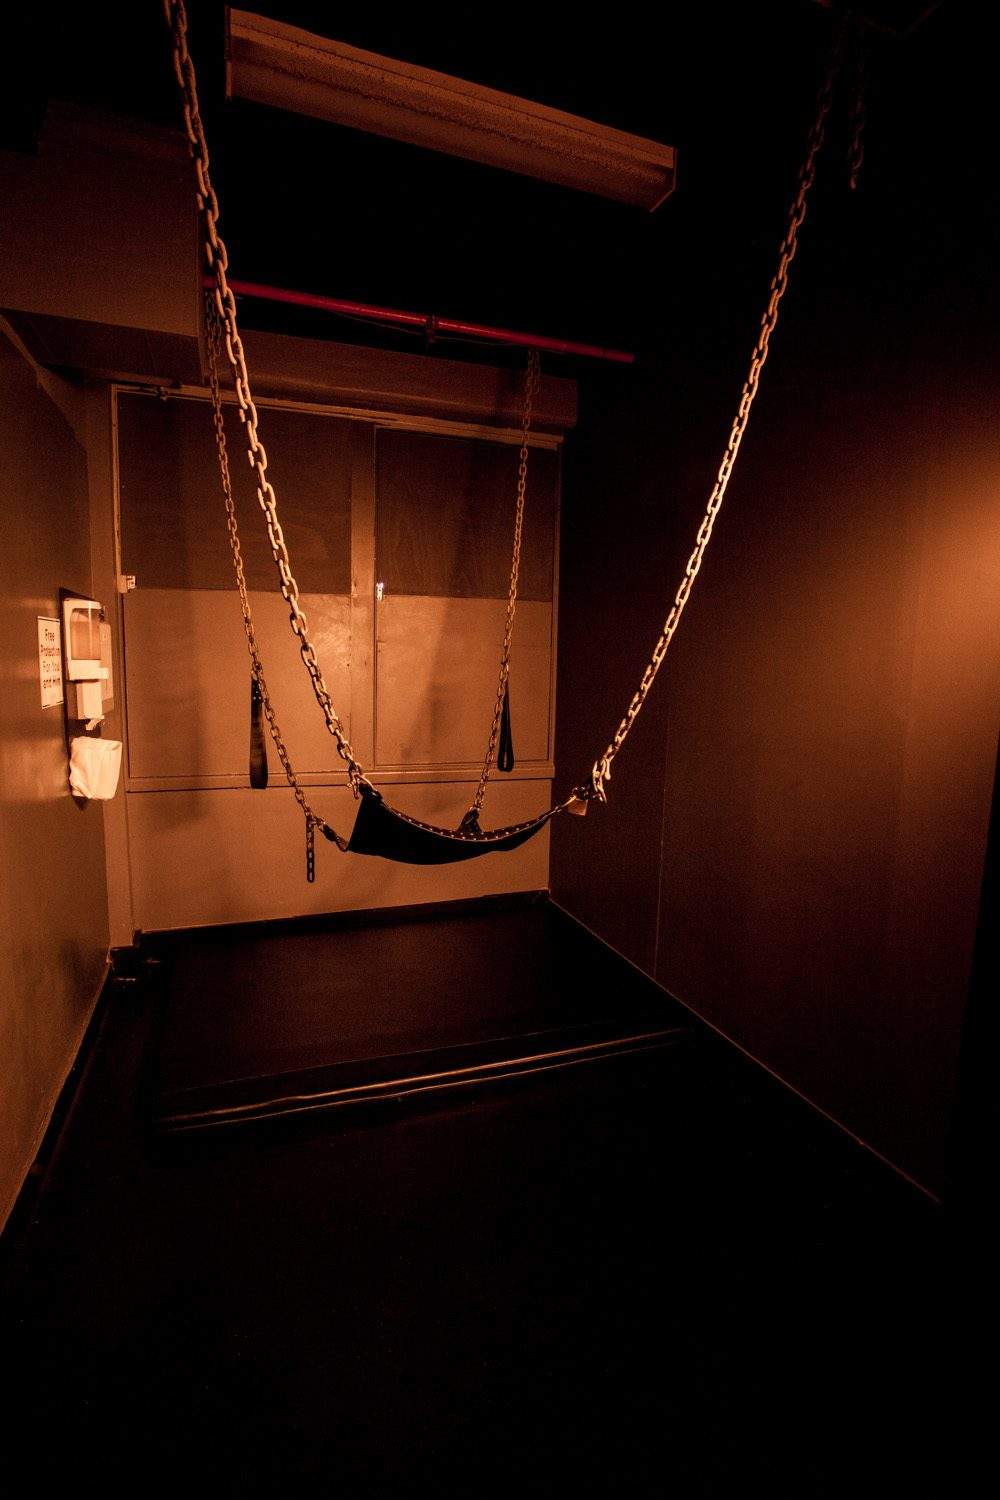 Somewhere to hang out ... Another sling room on Level 3.